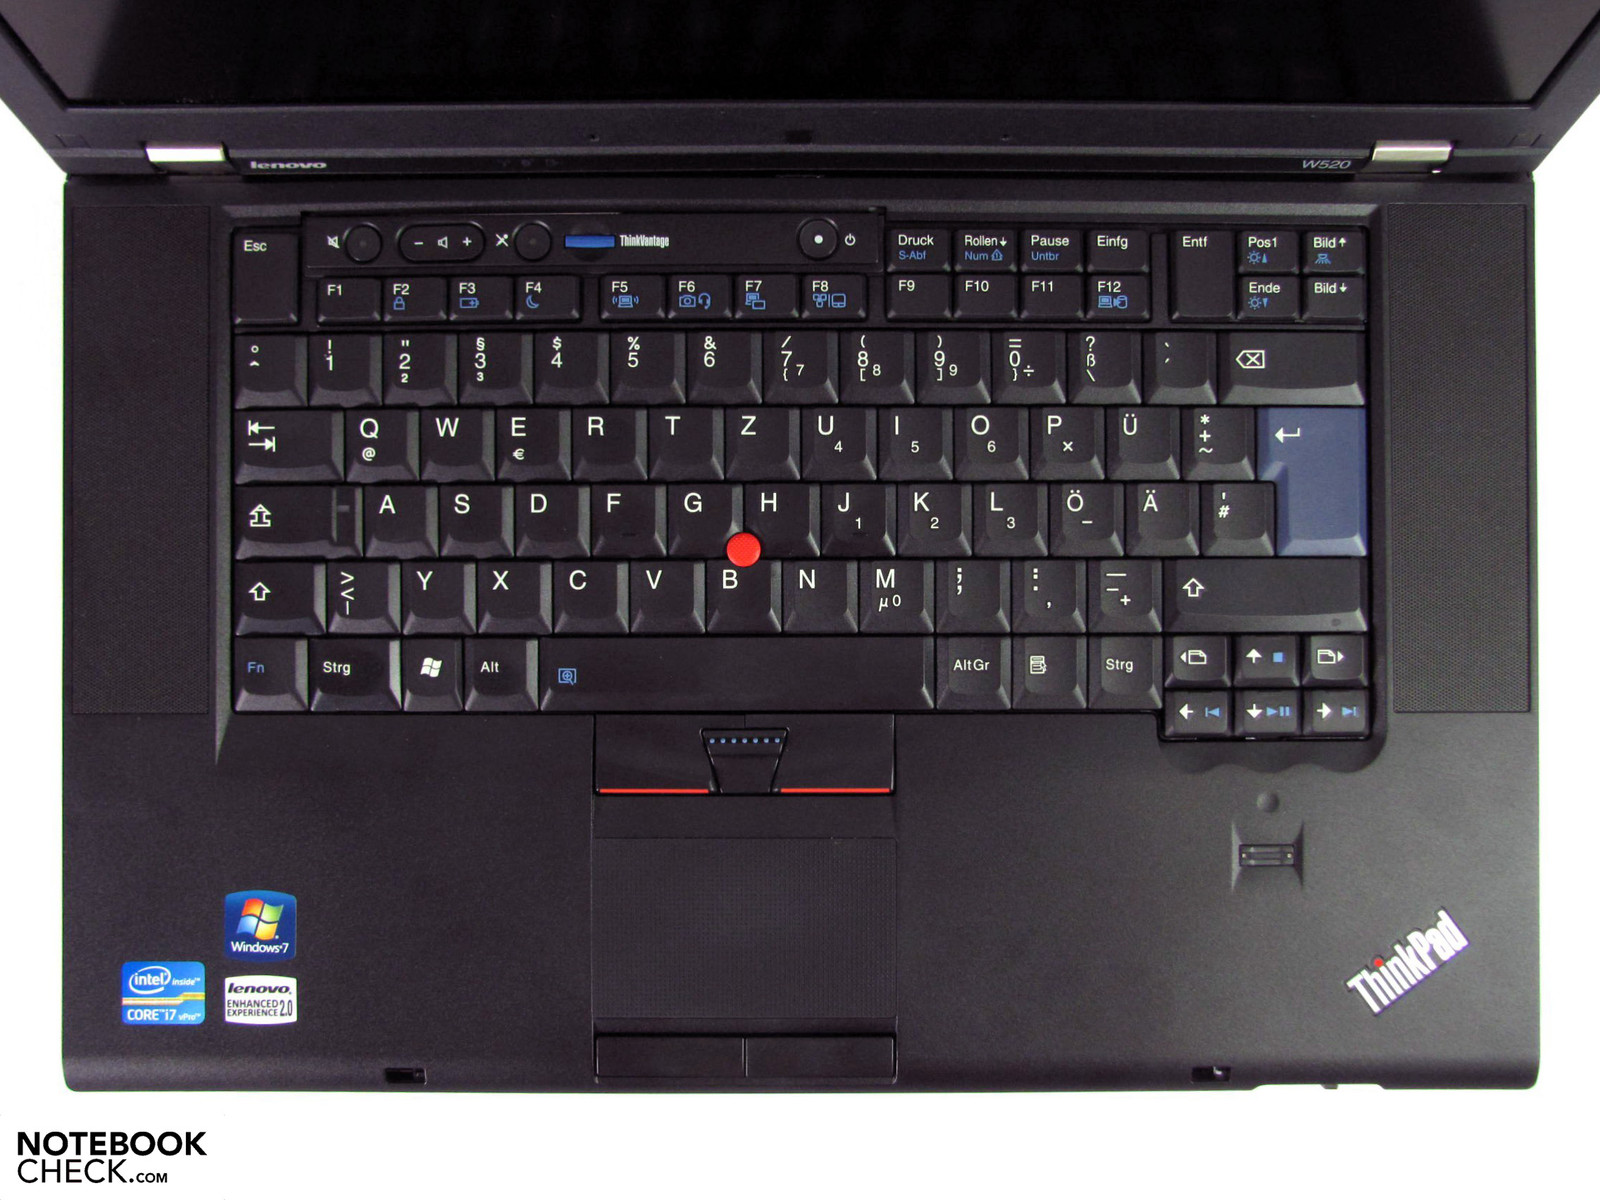 Arrow Pointing Down >> Review Lenovo ThinkPad W520 Notebook - NotebookCheck.net ...